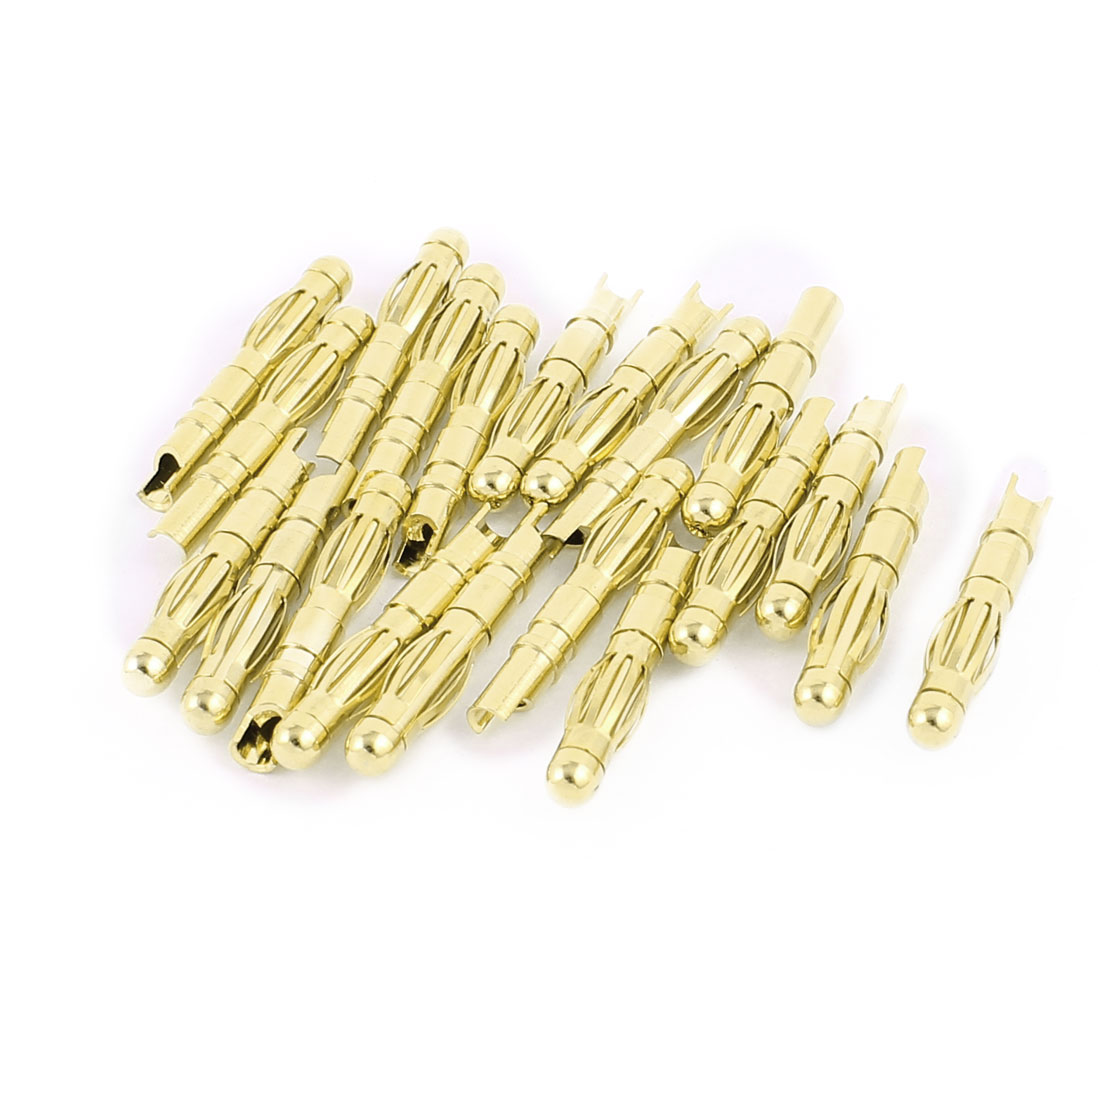 20 Pcs Gold Tone Copper Hemihedral 4mm Banana Jack Connector